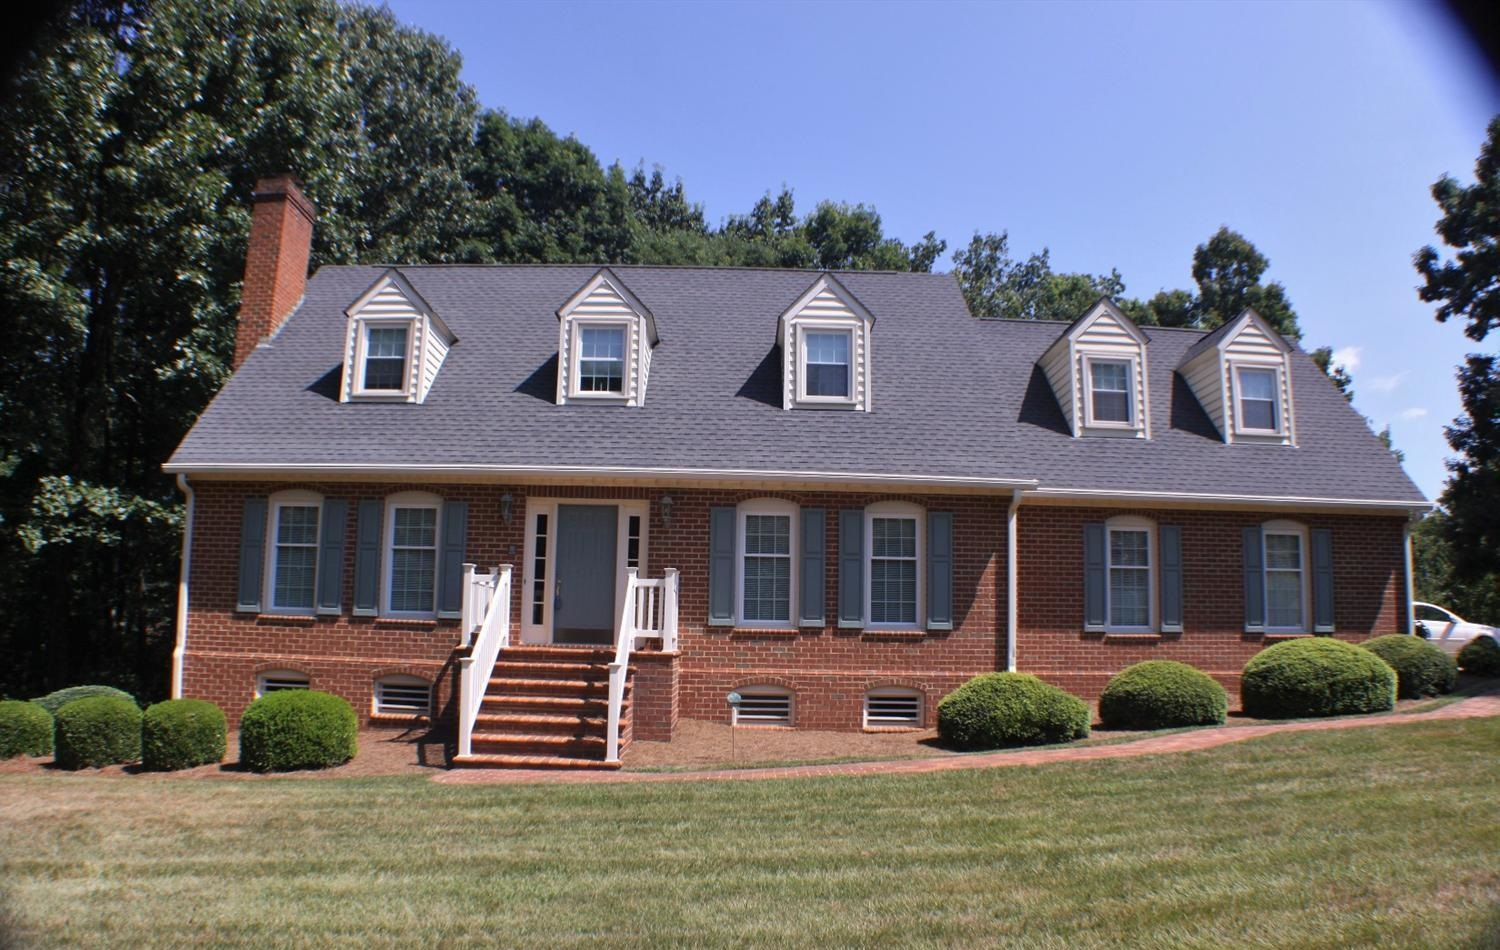 117 Hickory Ln Appomattox 24522 real estate listing home for sale in appomattox karlmillerteam